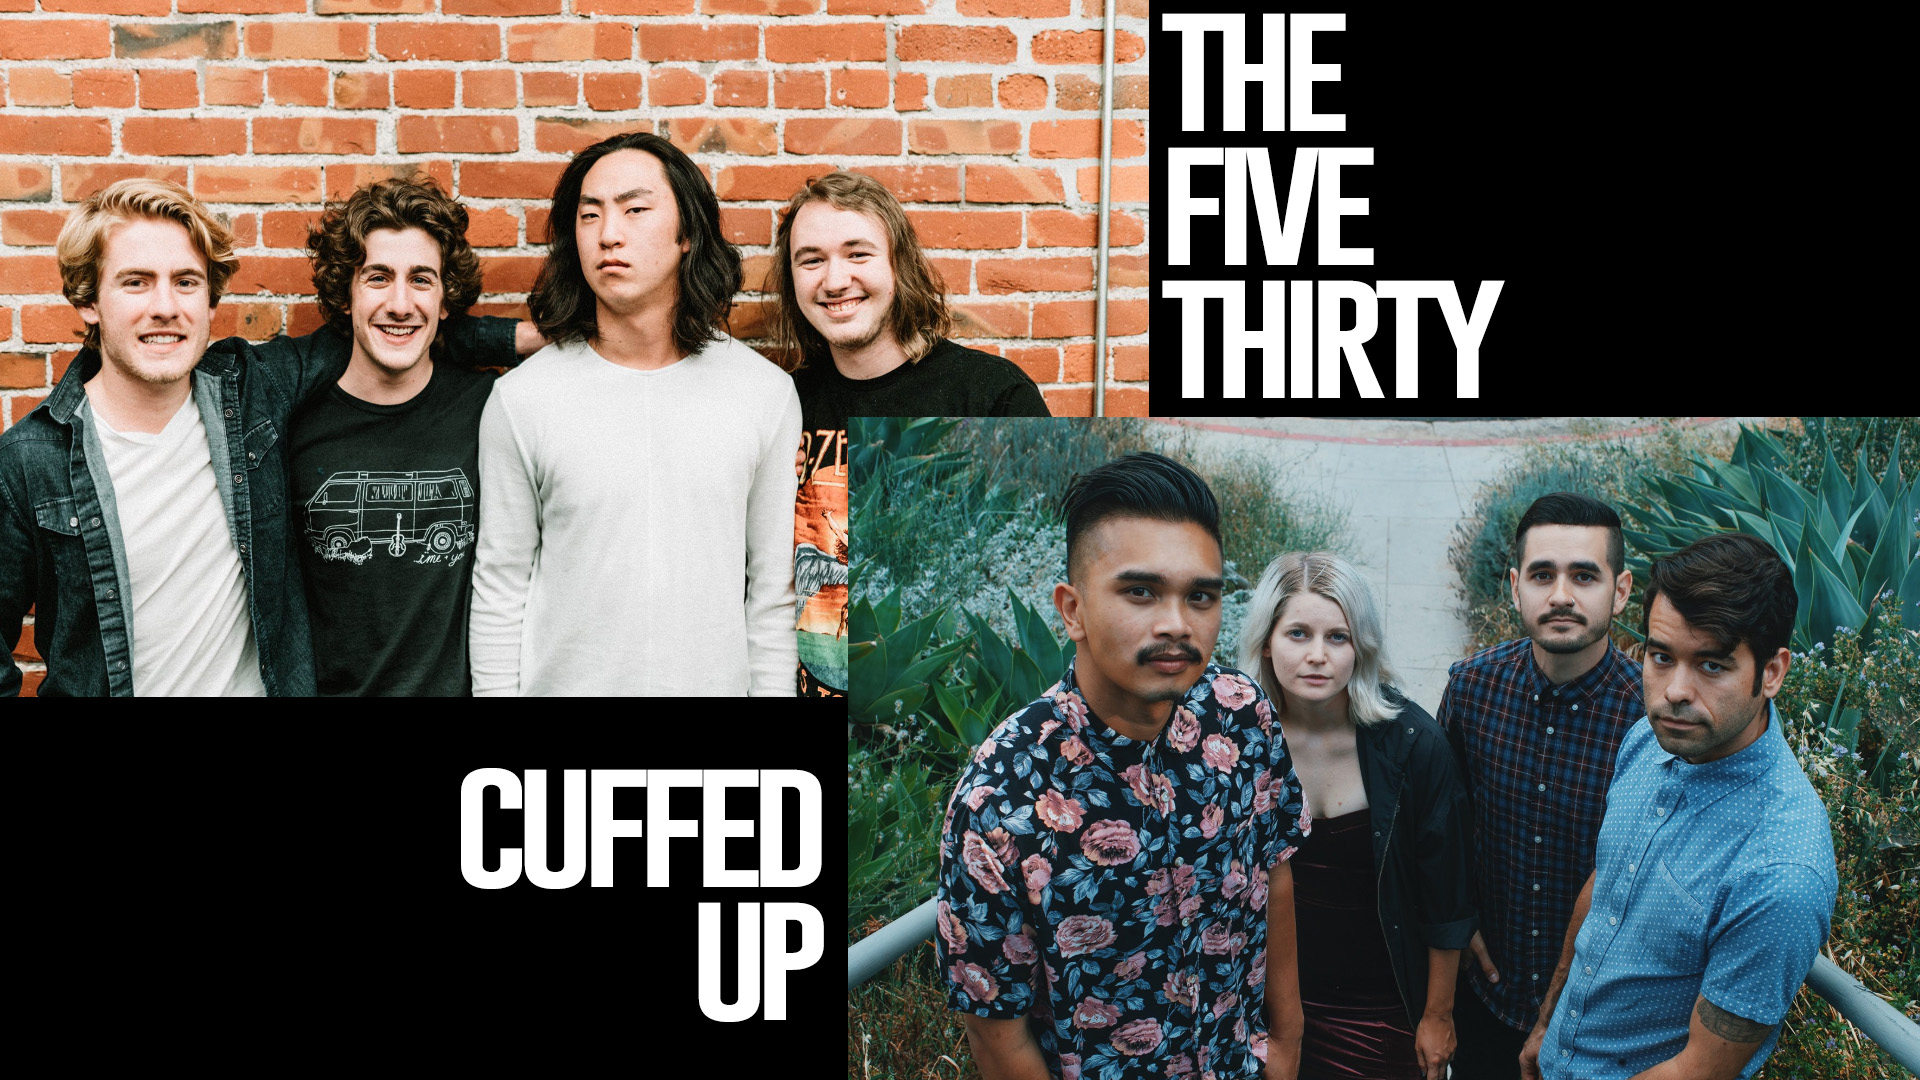 The Five Thirty and Cuffed Up